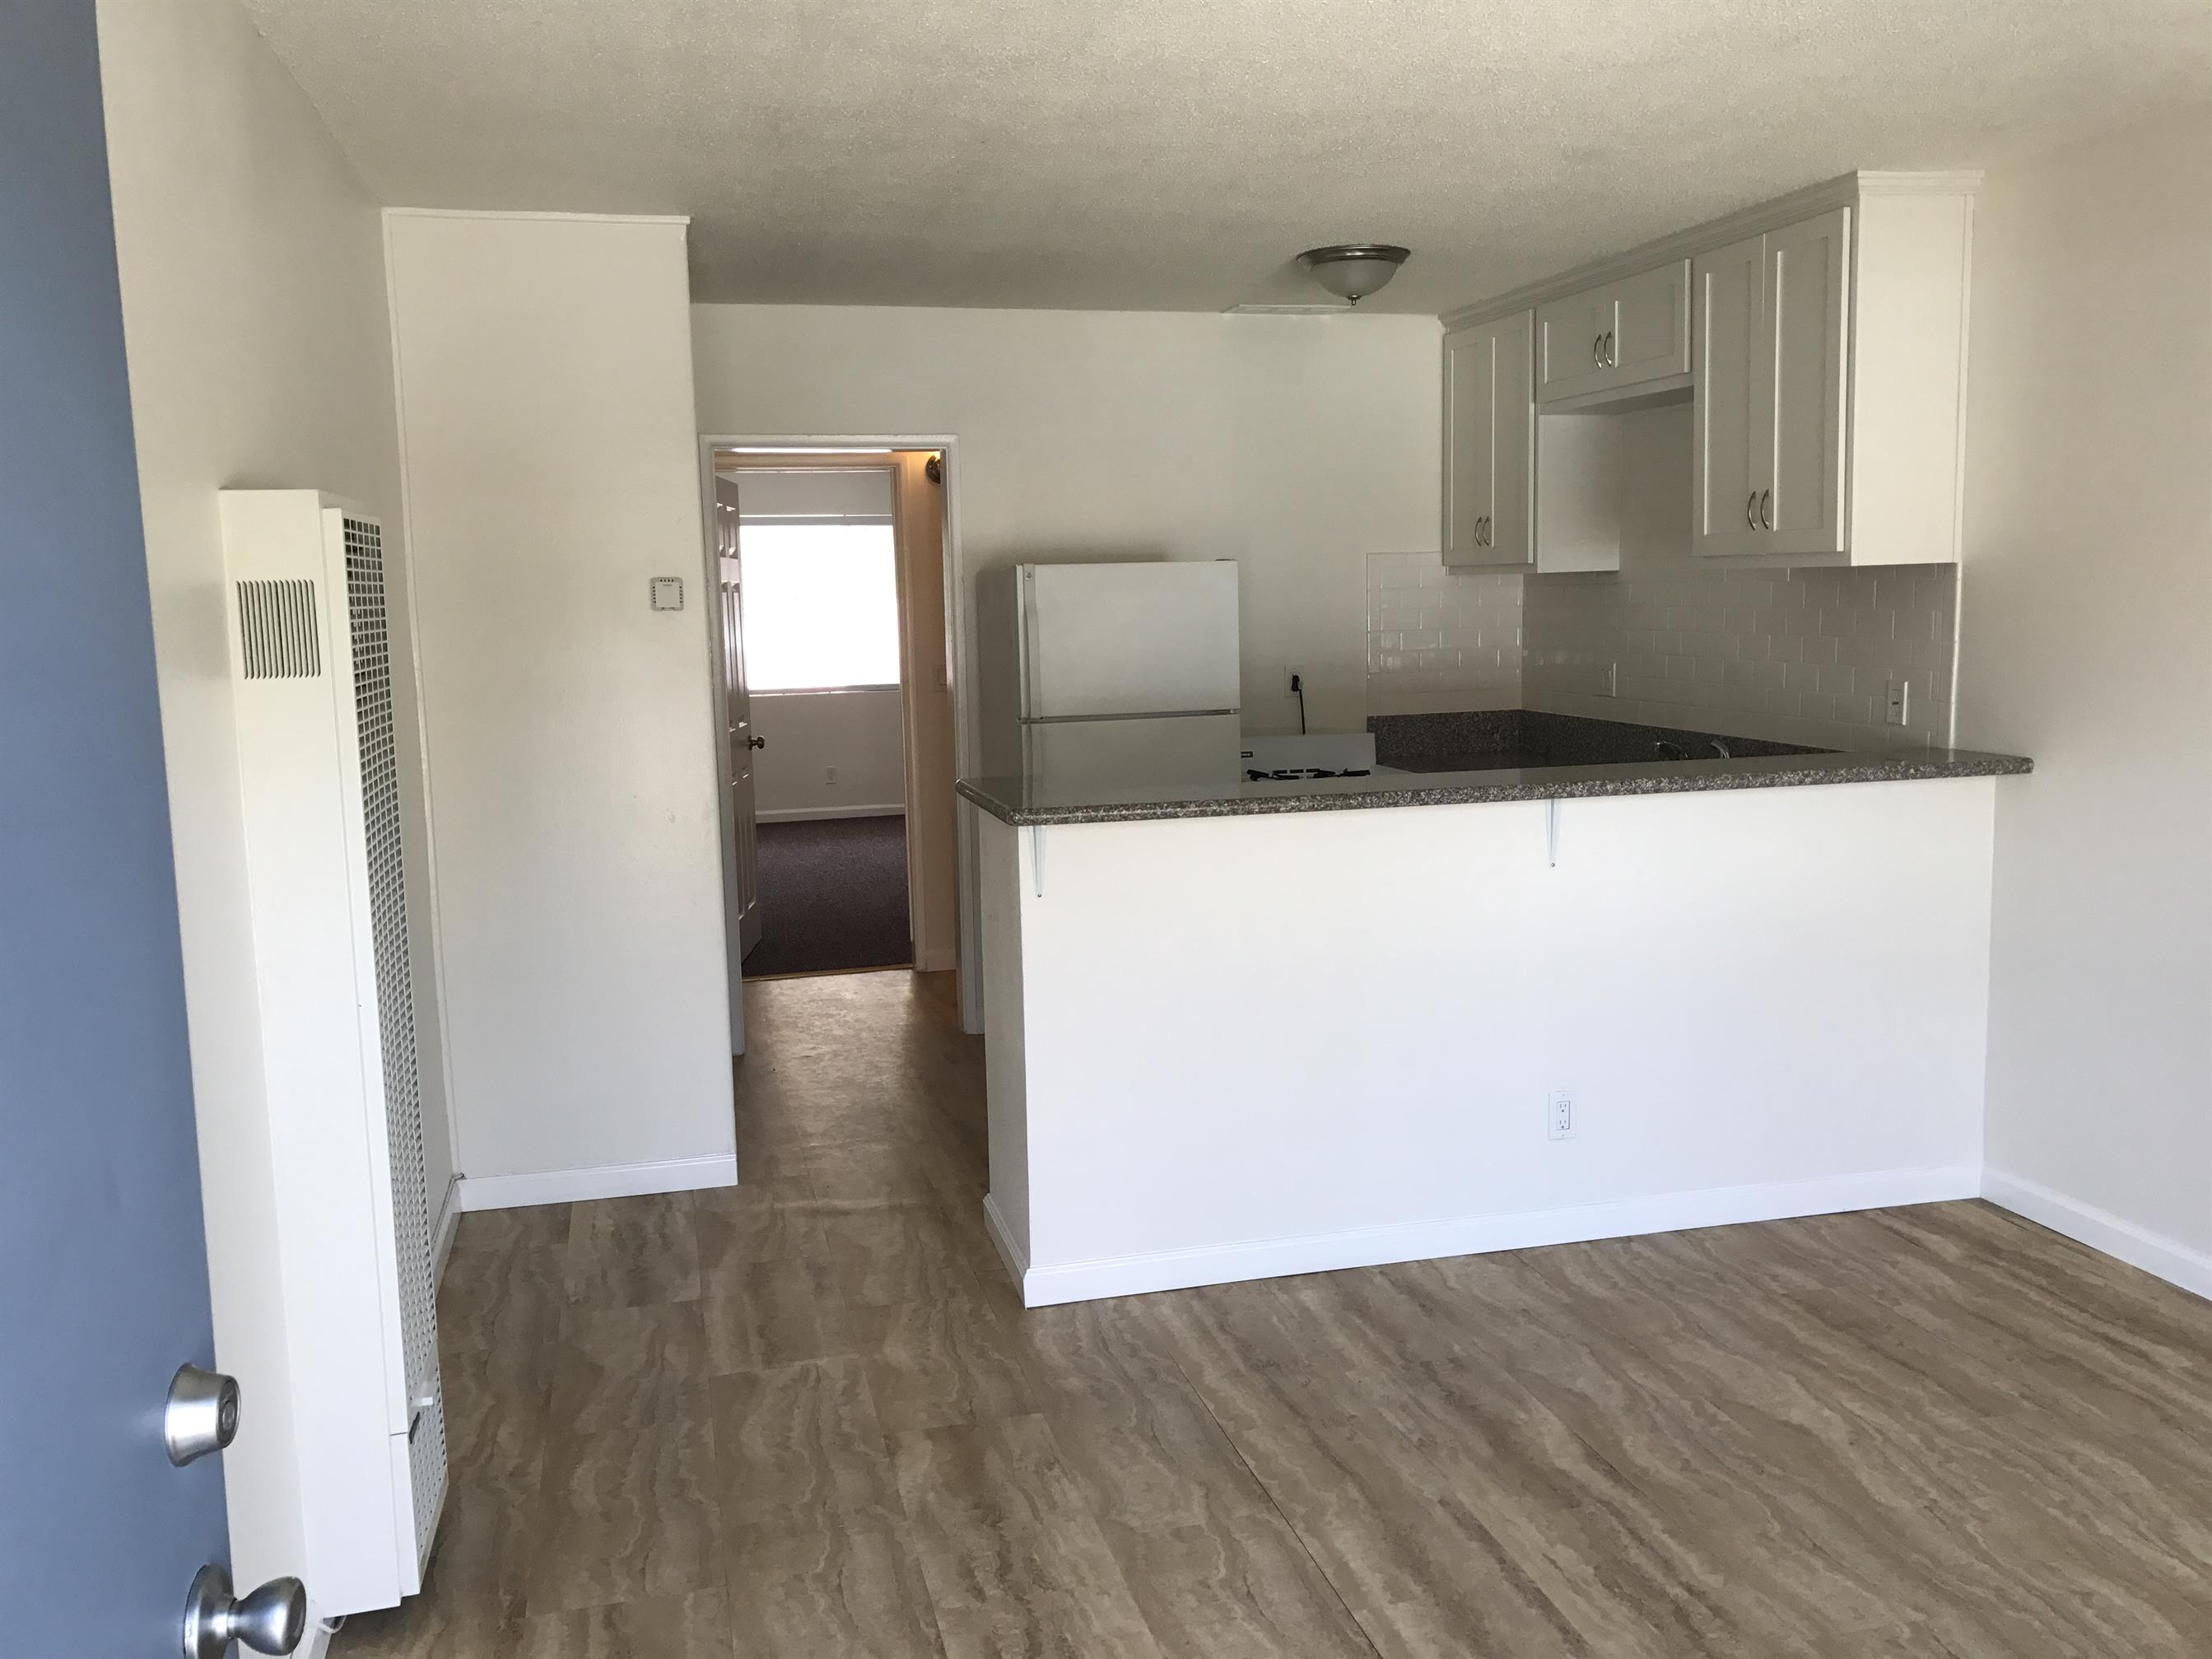 6691 Abrego Rd 8 image